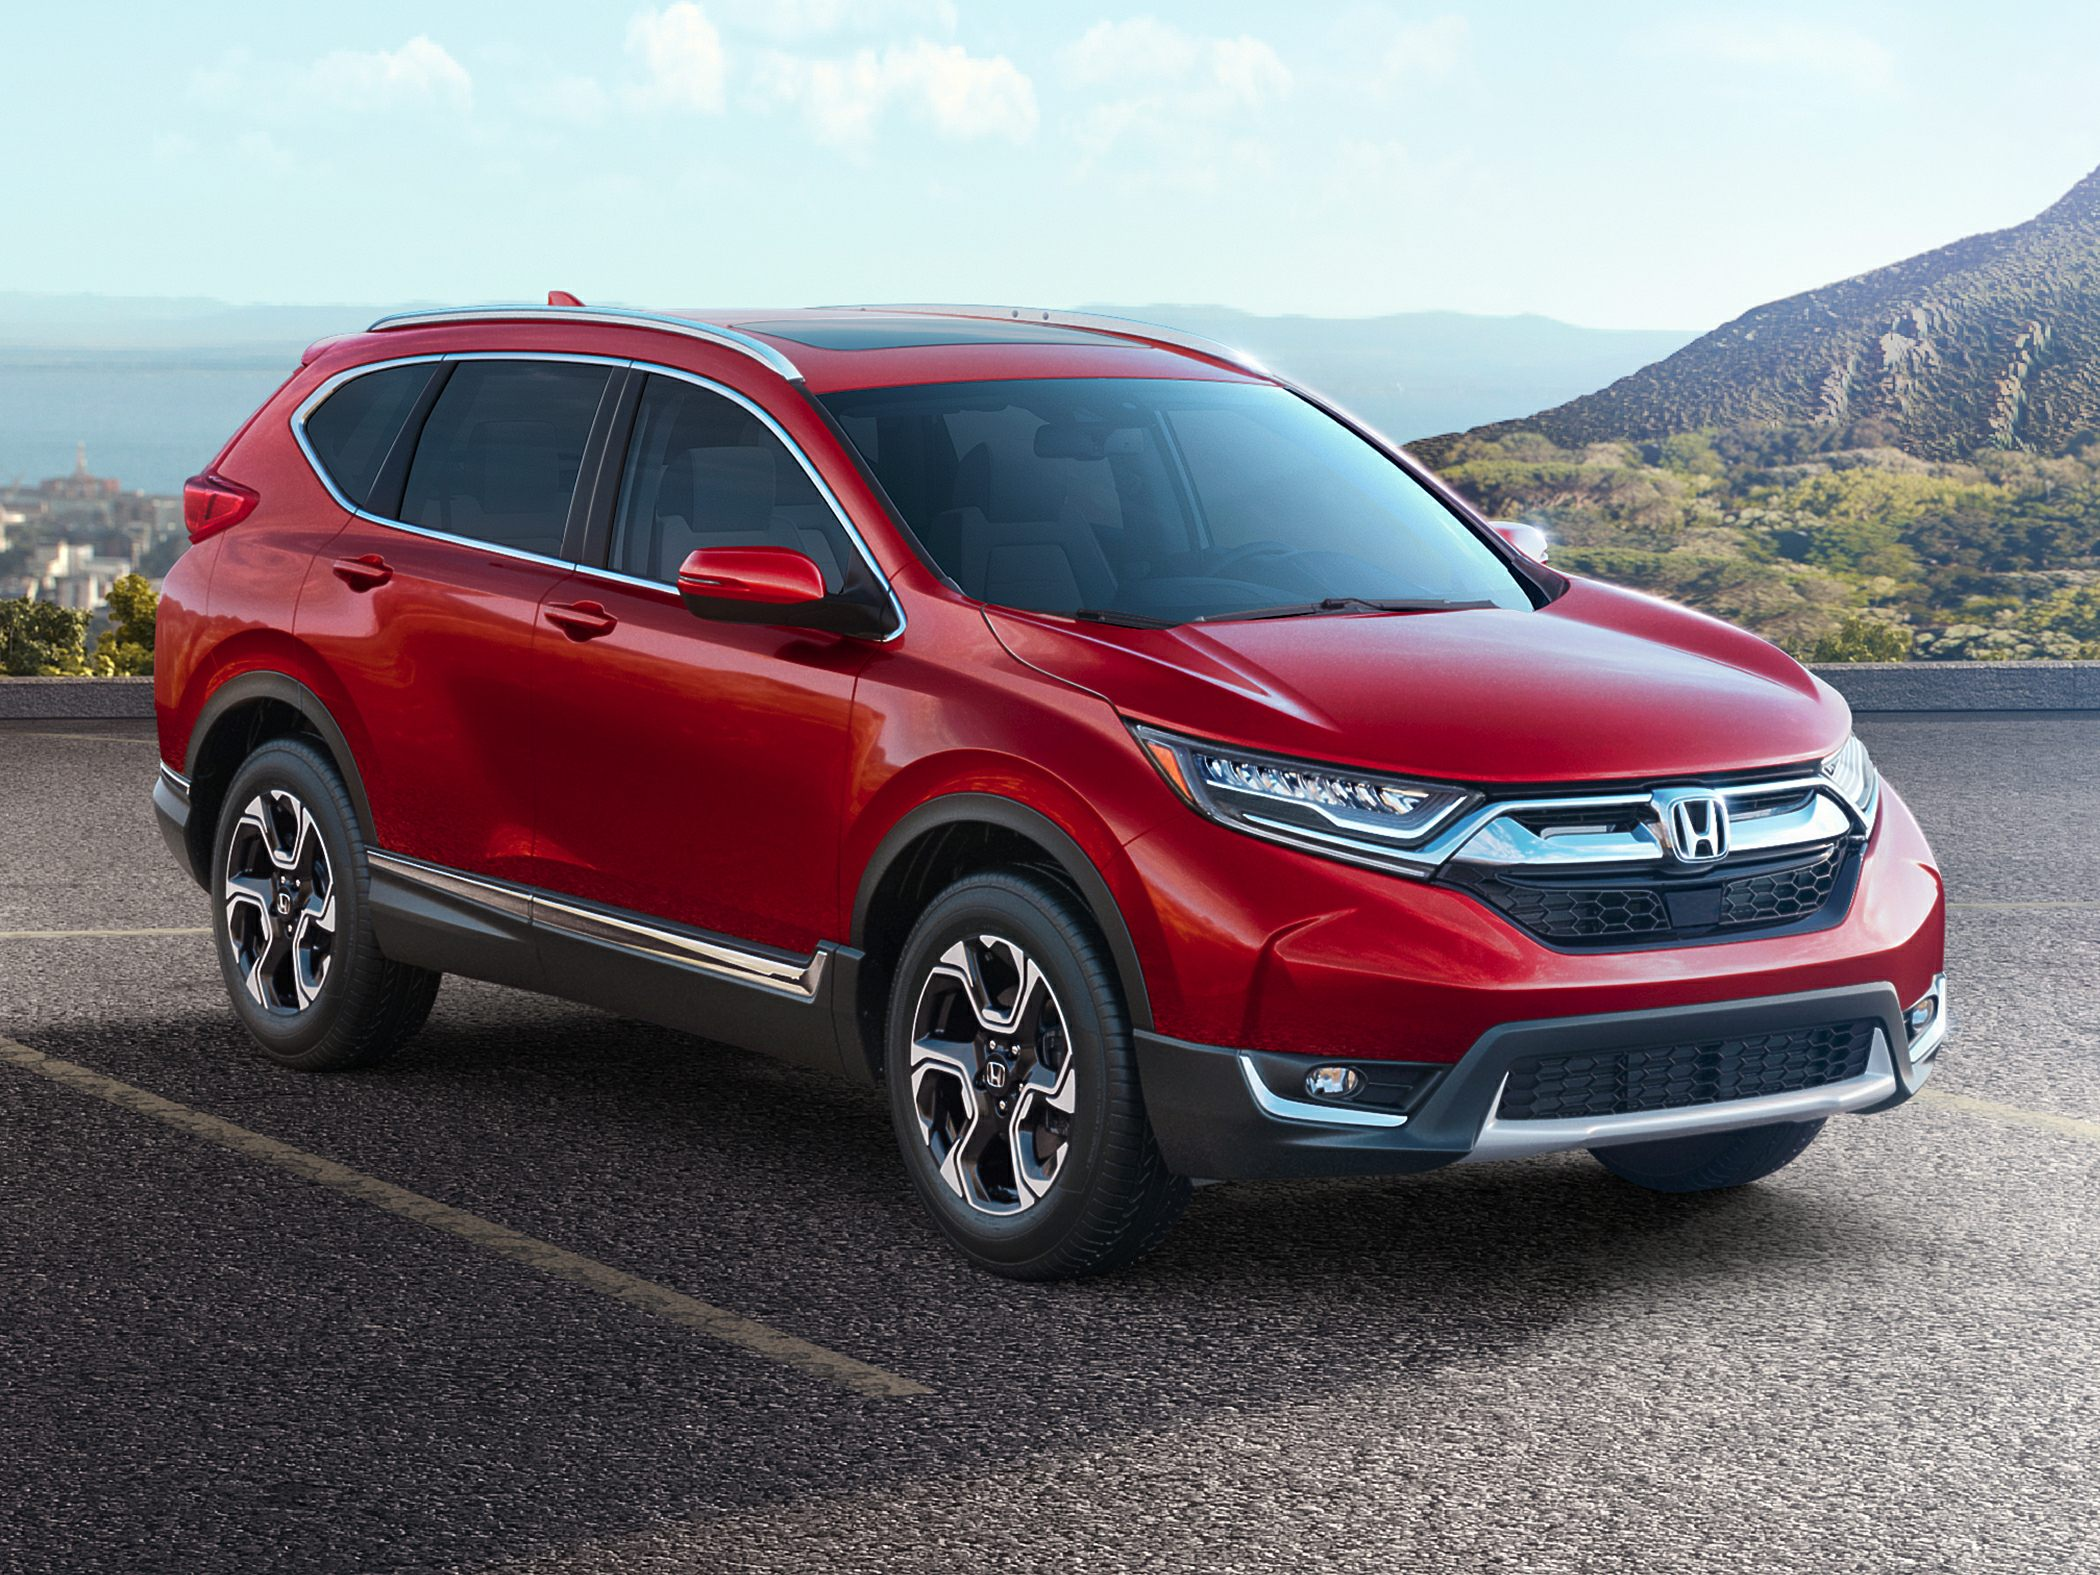 Honda Crv Invoice Pricing | dascoop.info